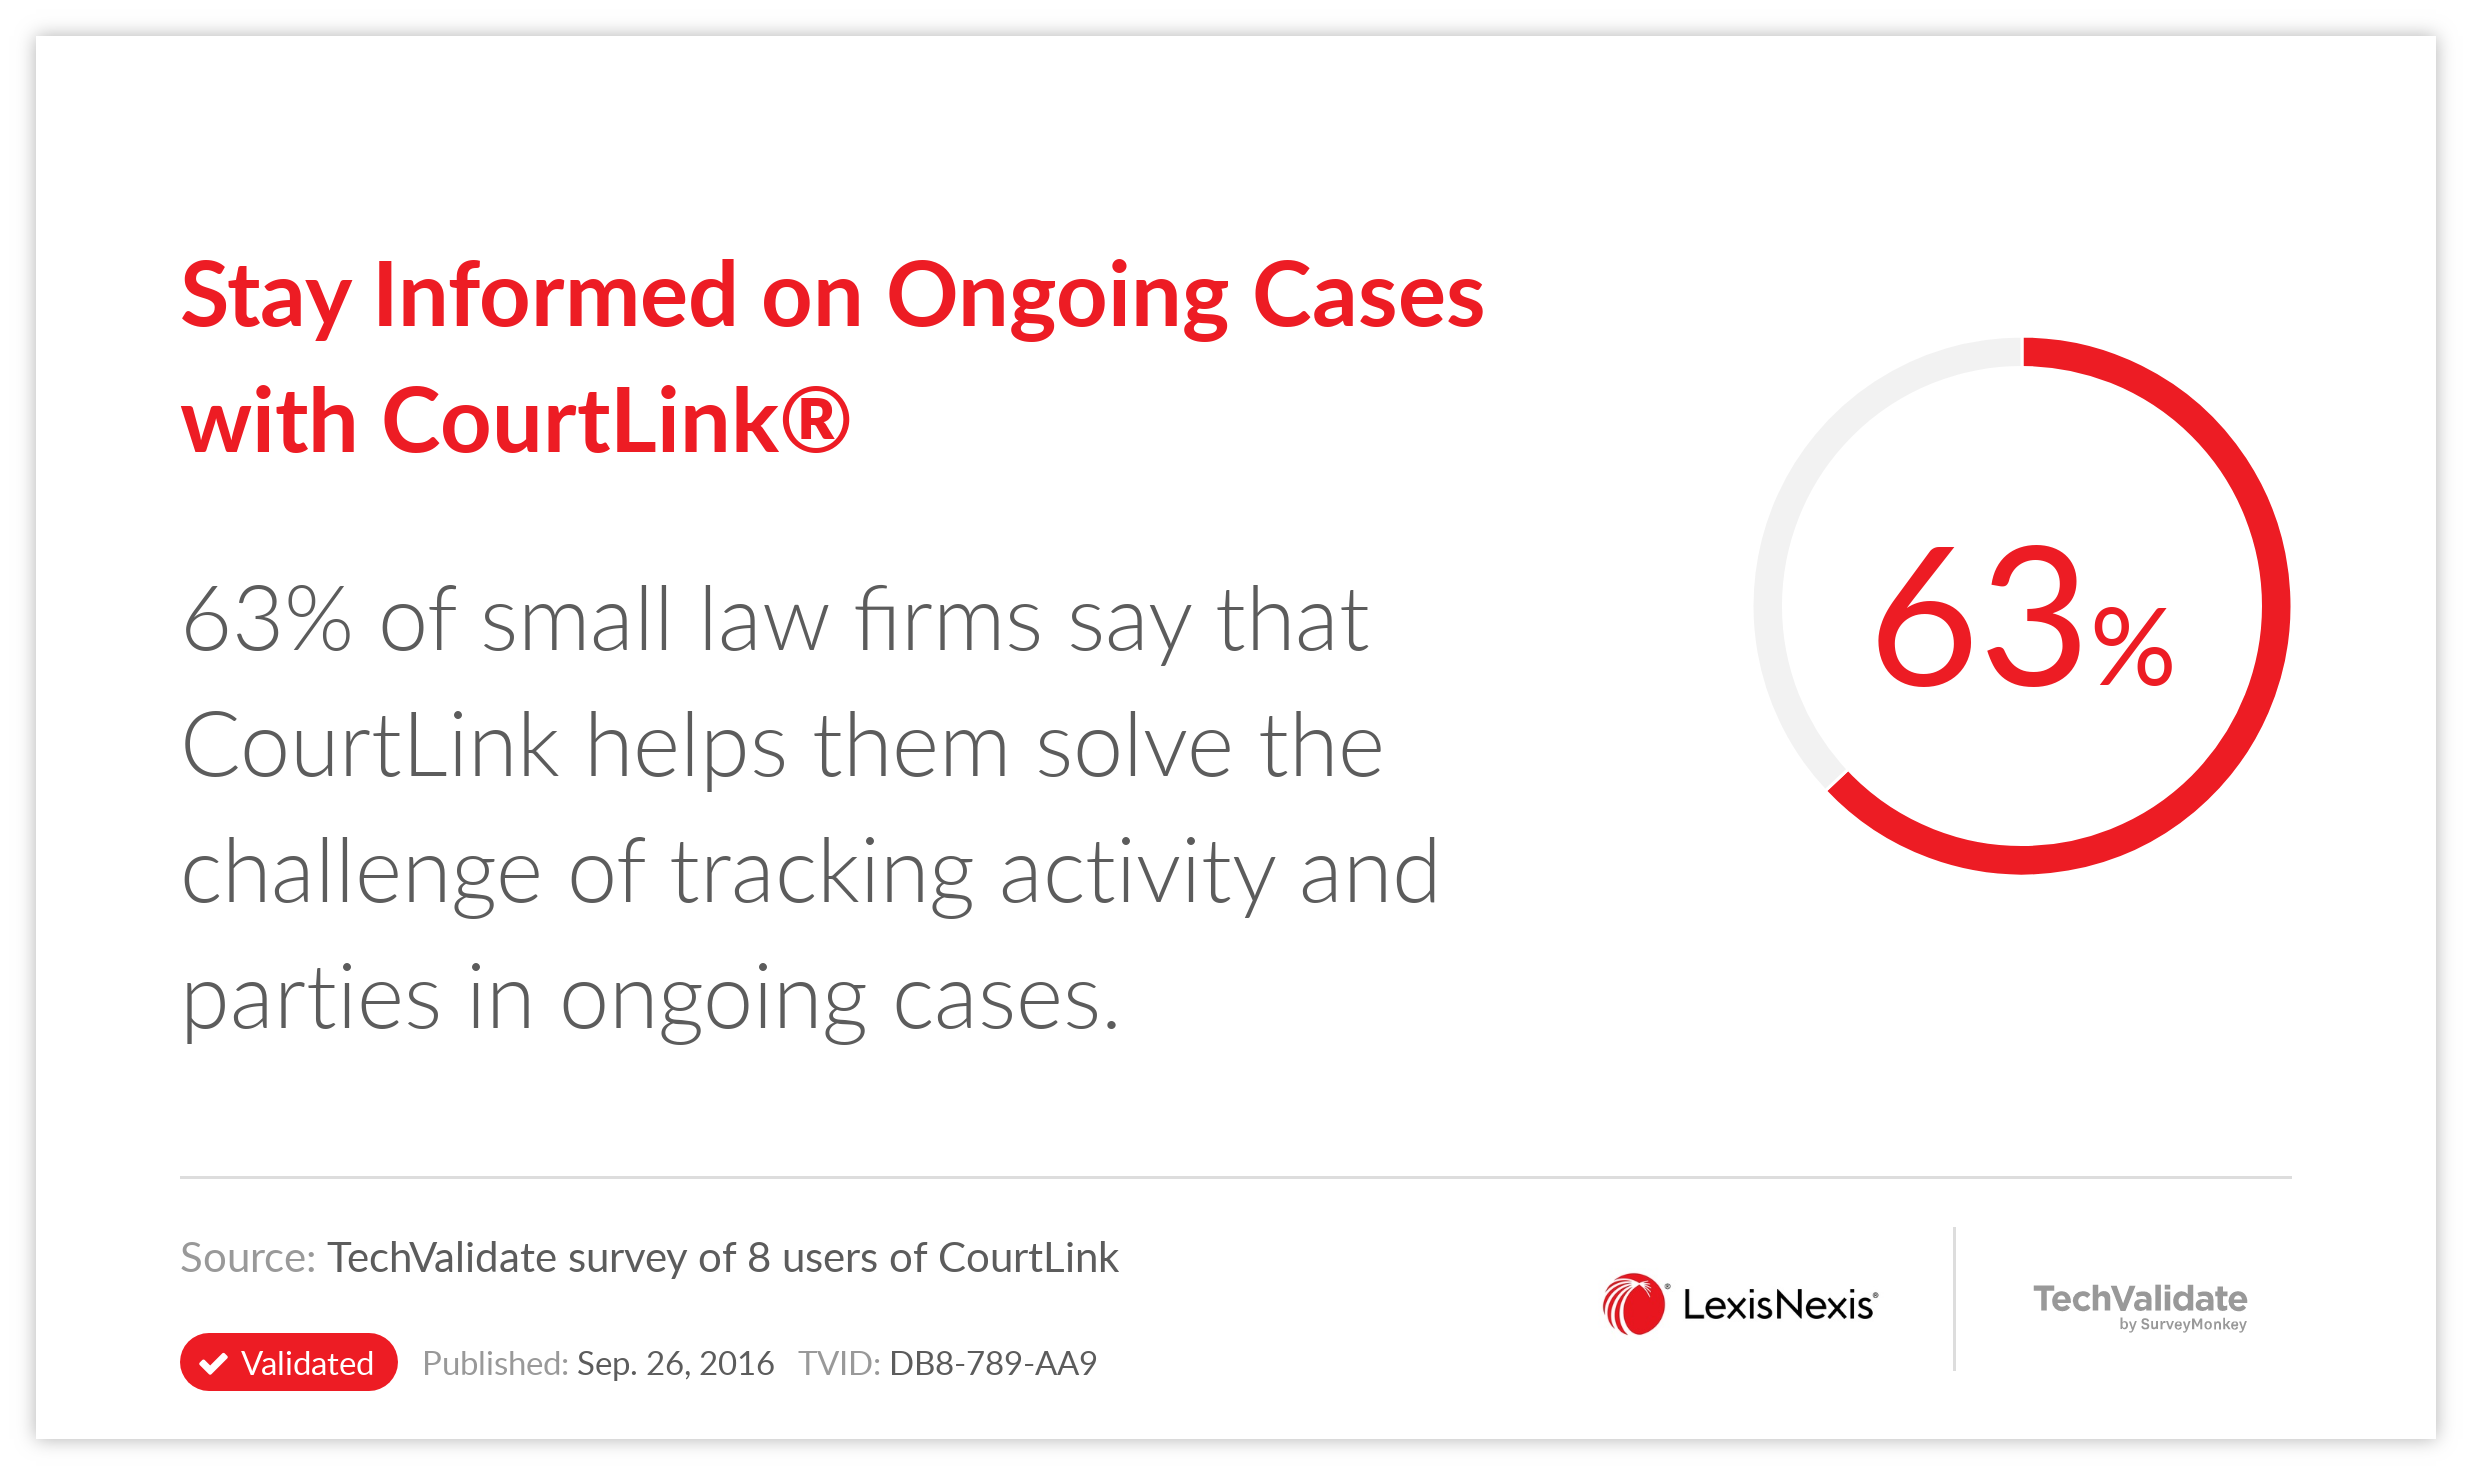 Stay Informed on Ongoing Cases with CourtLink(R)